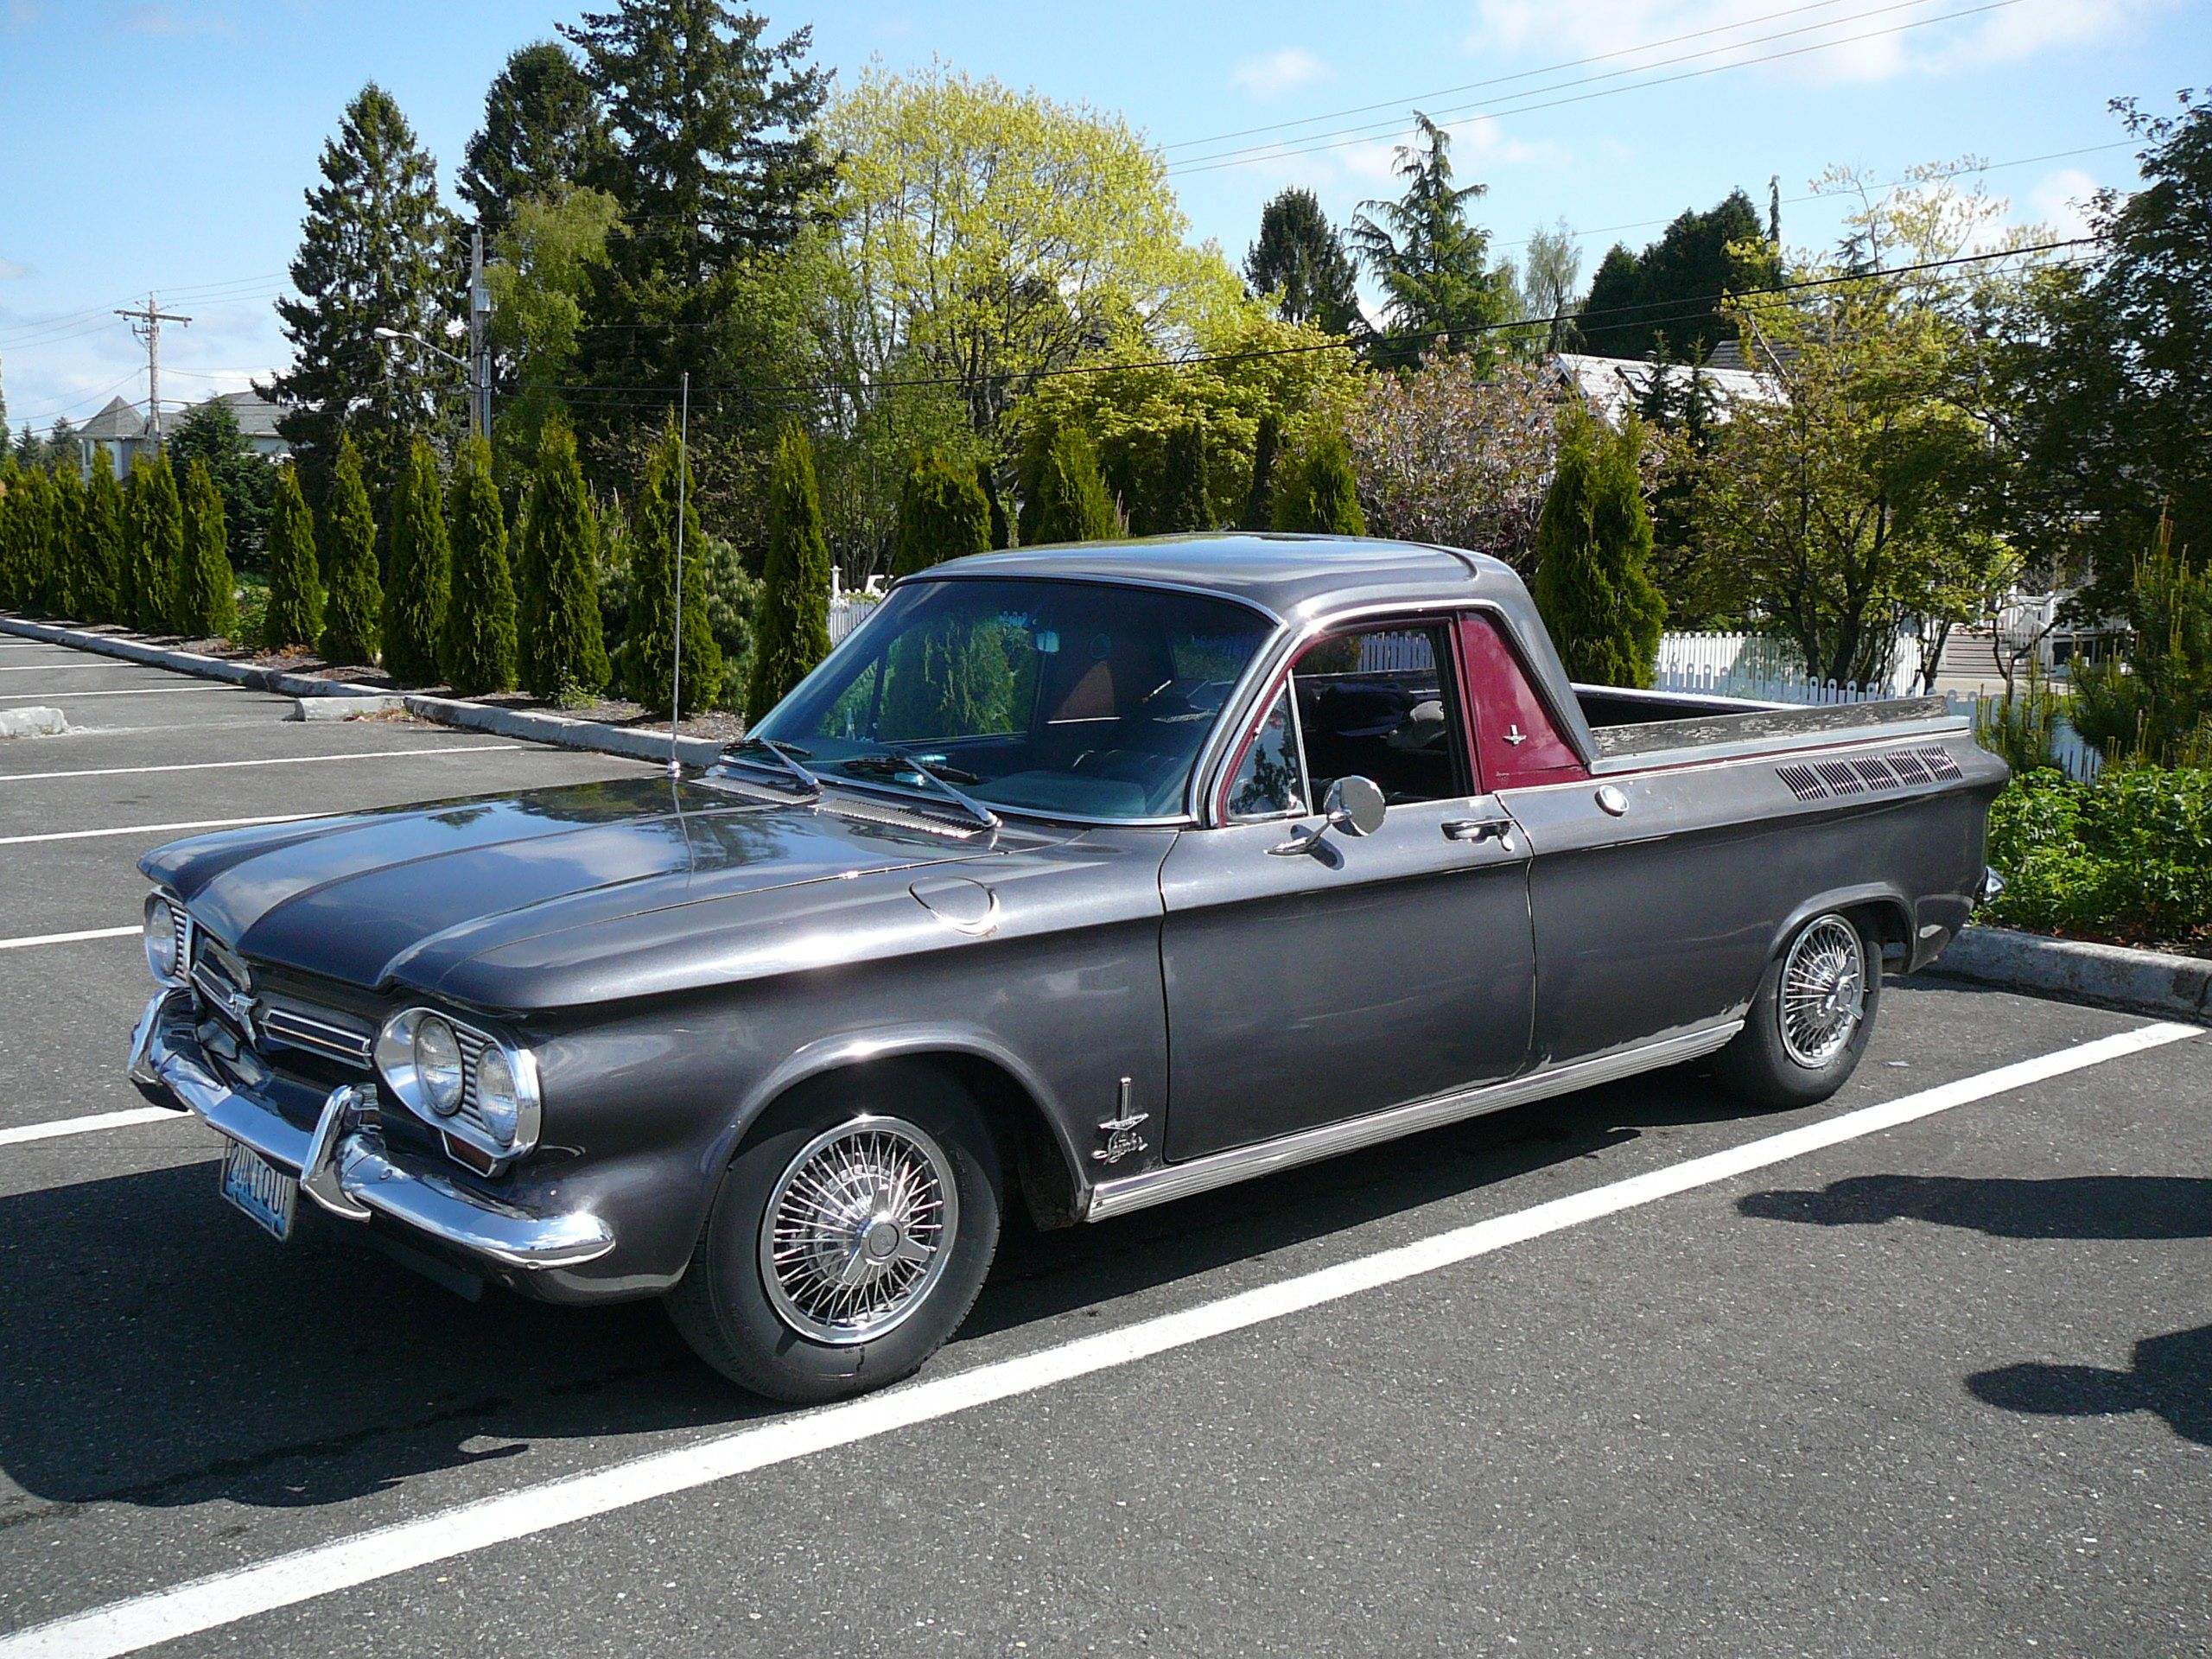 Corvair Conversion To Look Like A El Camino Or Corvairino Chevy